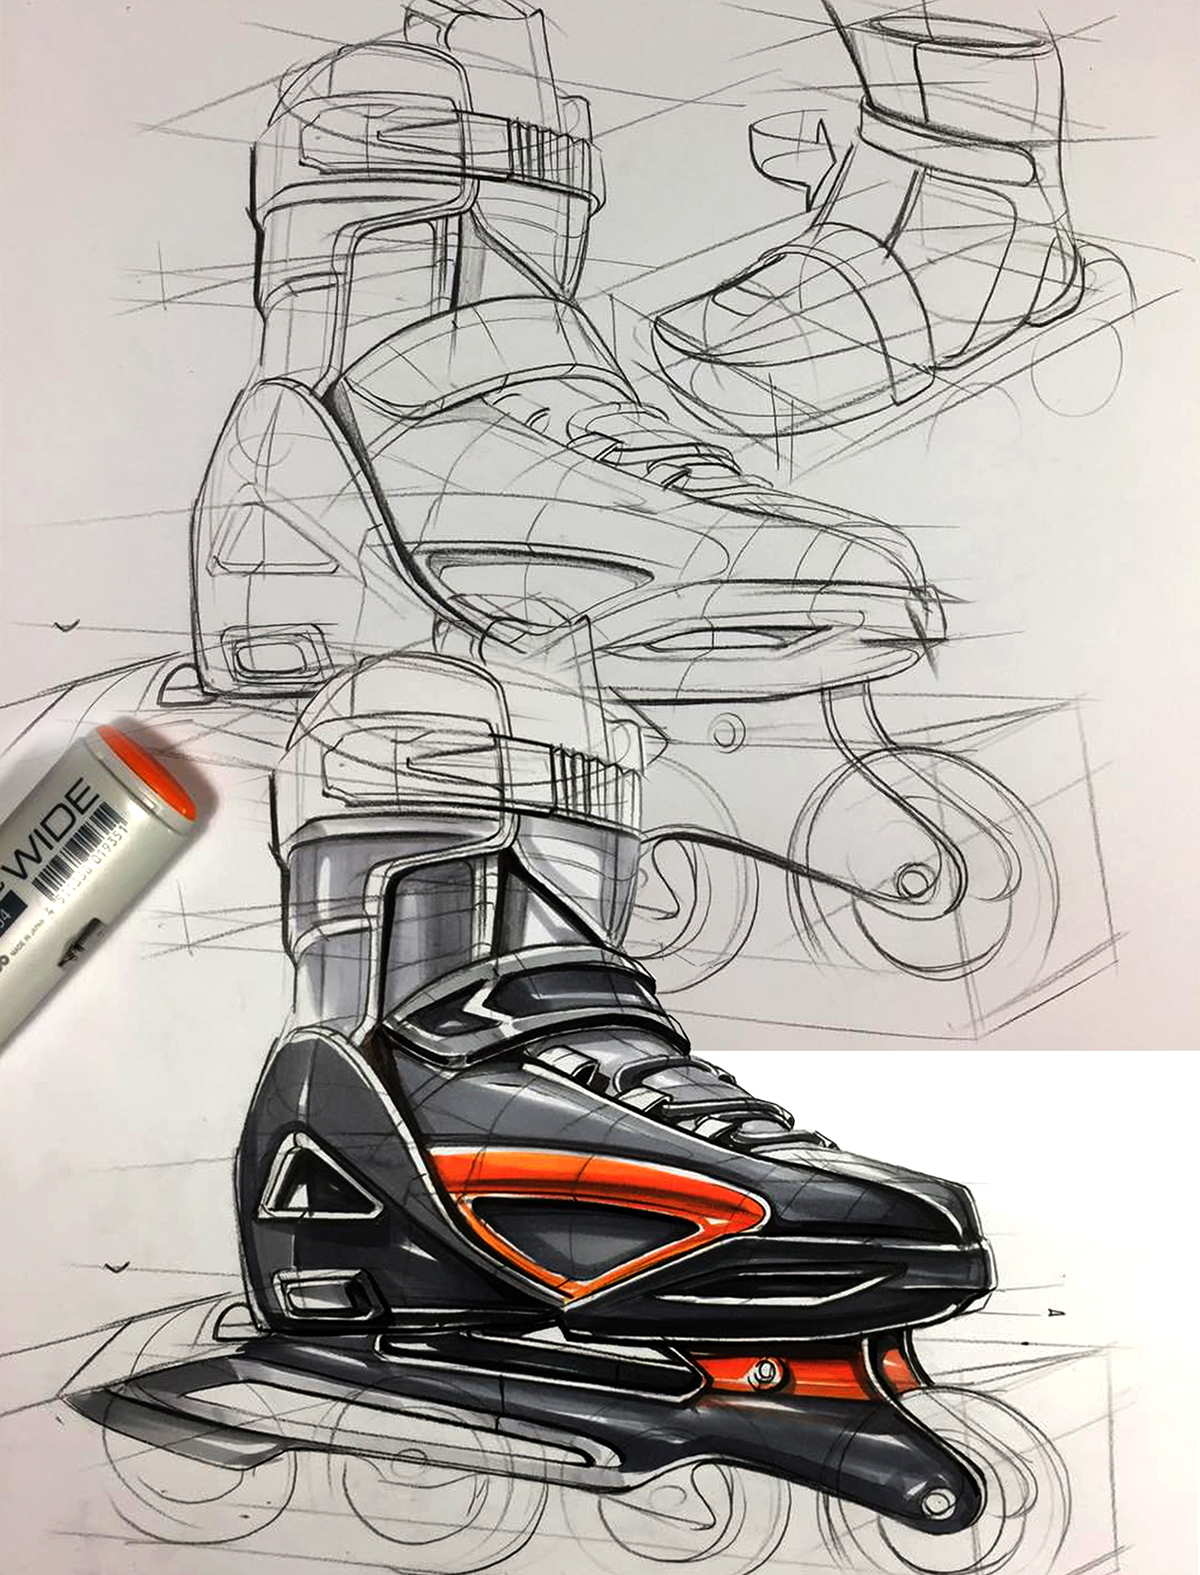 Product Design Line Art : Industrail design sketch marker rendering tutorial on